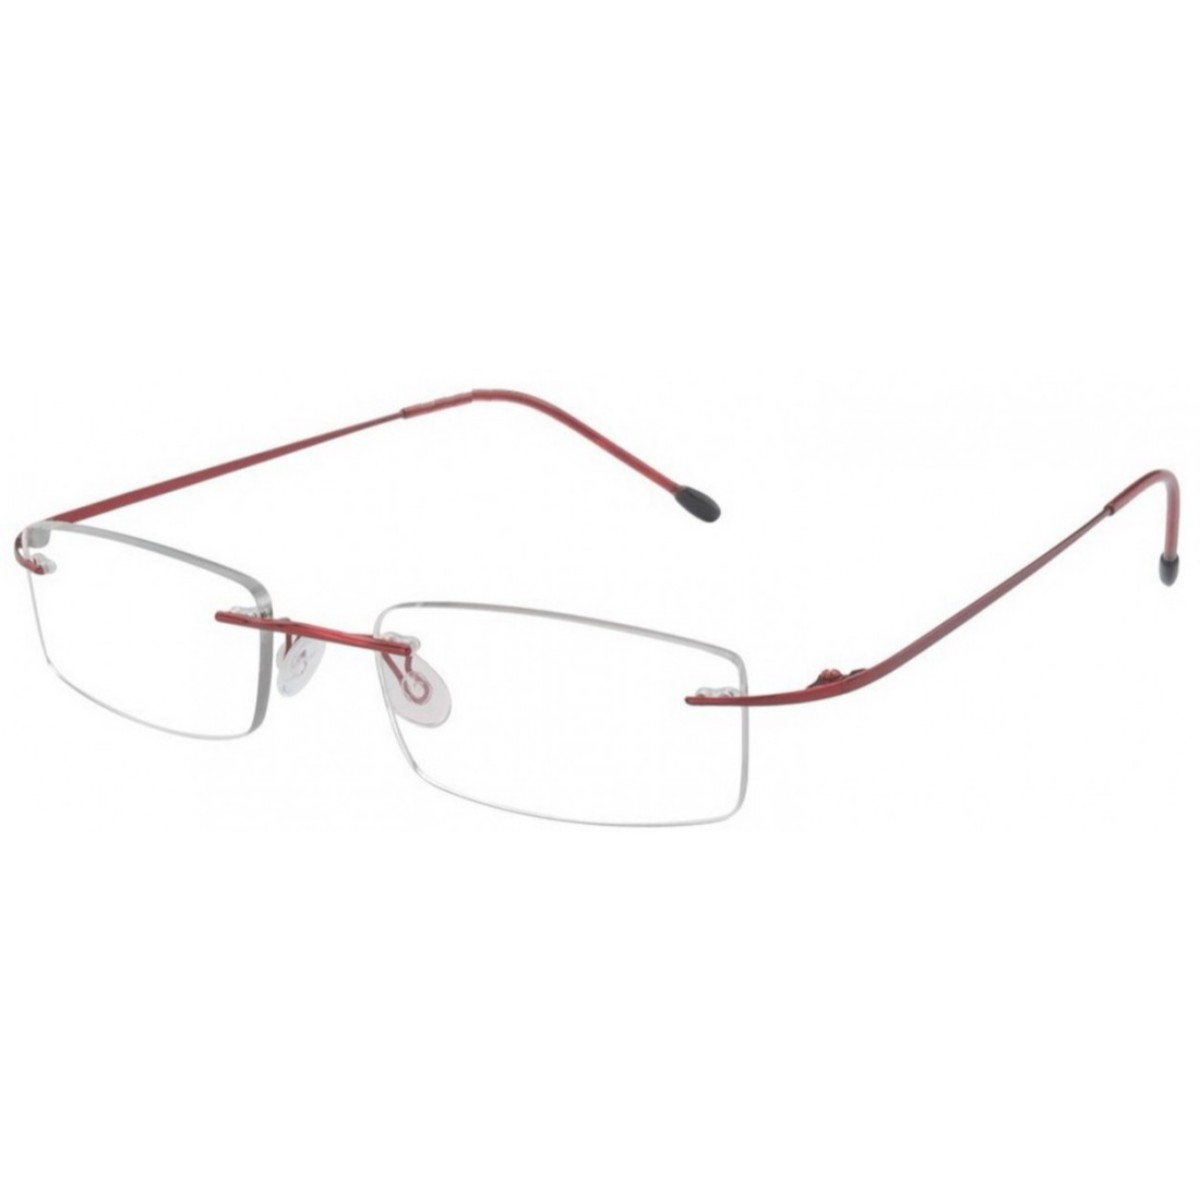 Wine Red Rimless Computer Glasses with Anti Glare Coating